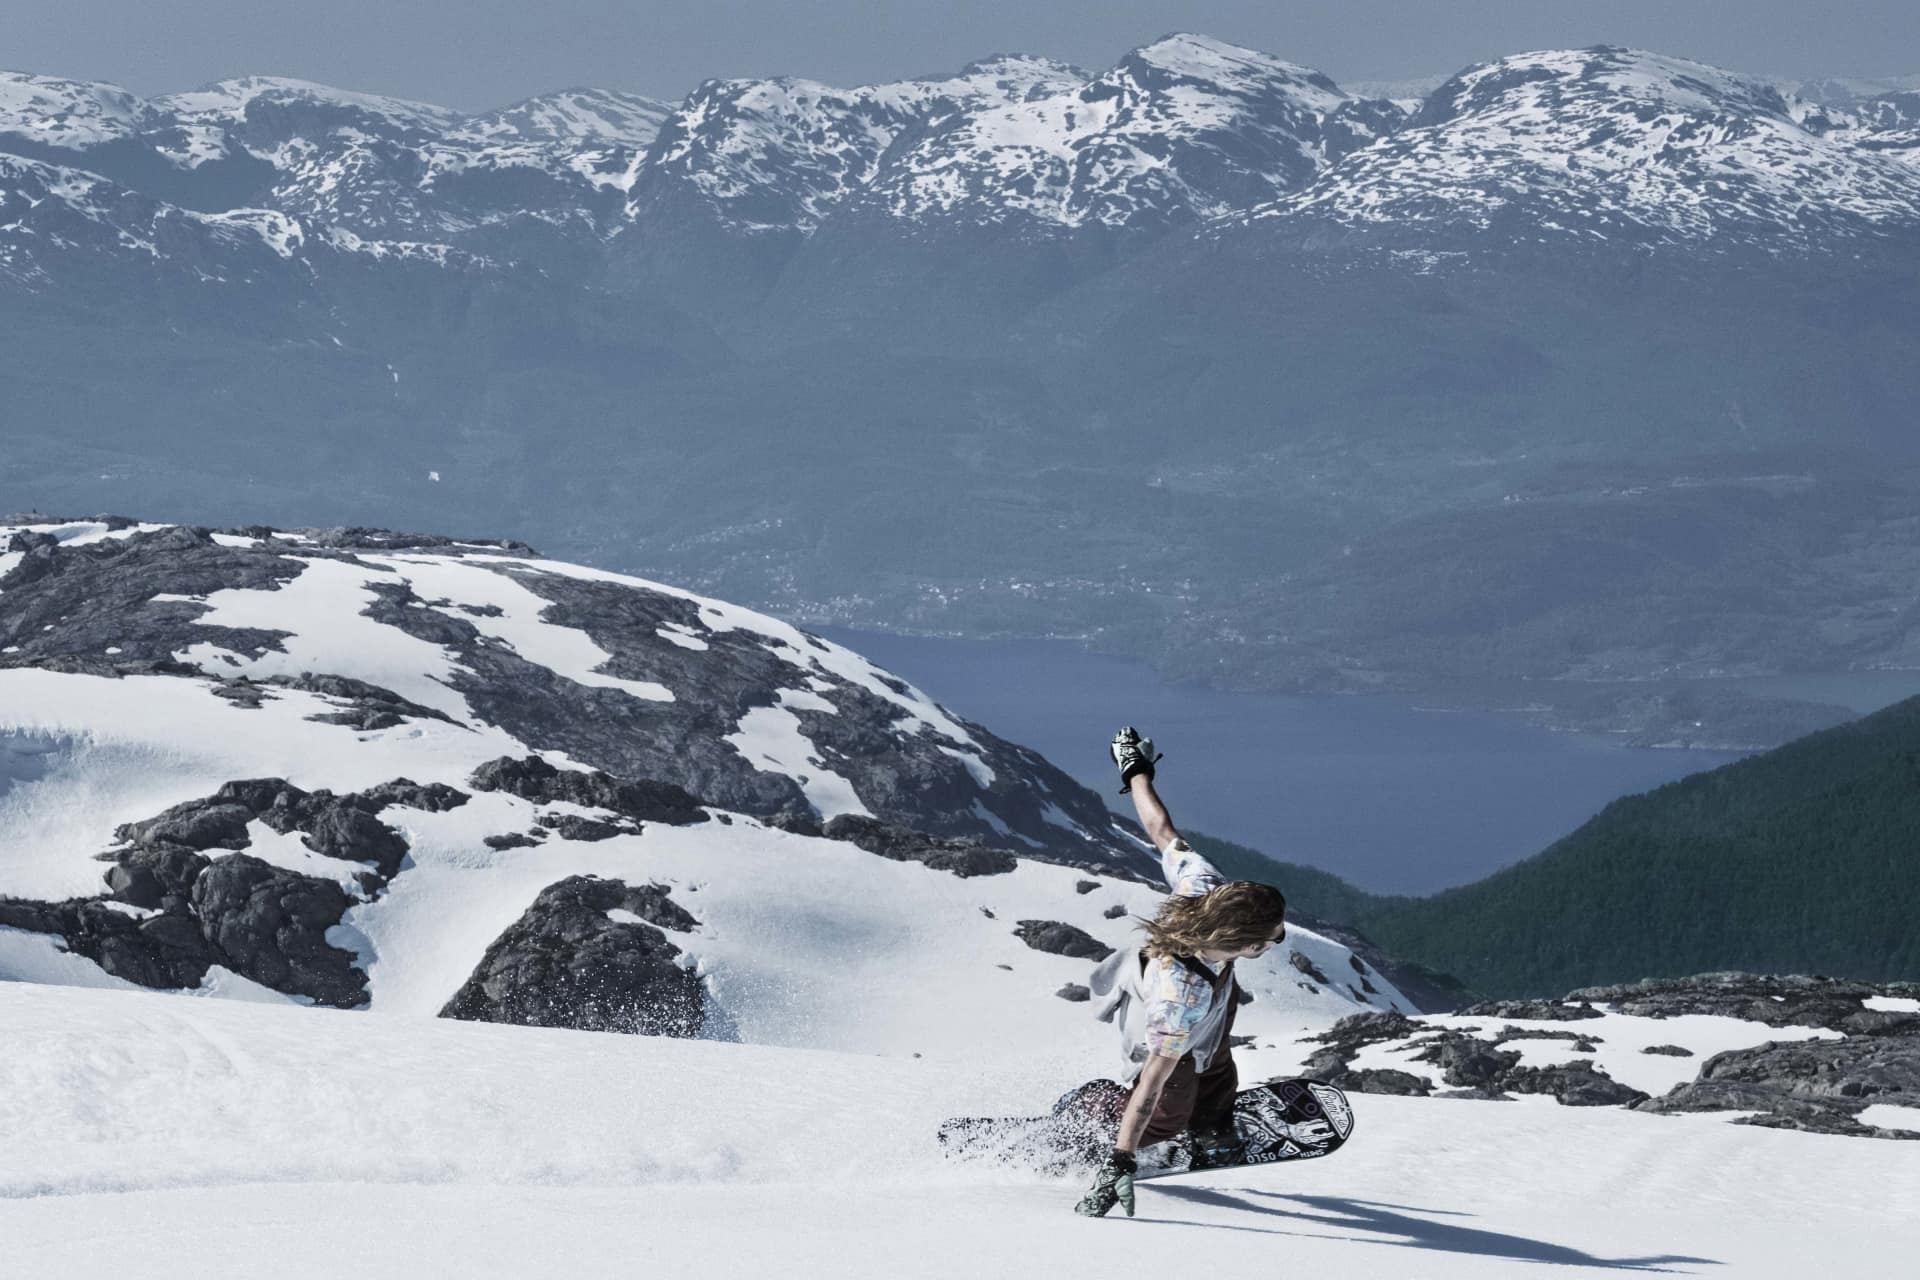 A person snowboarding on the folgefonna glacier in t-shirt with the Hardangerfjord visible in the horizon.